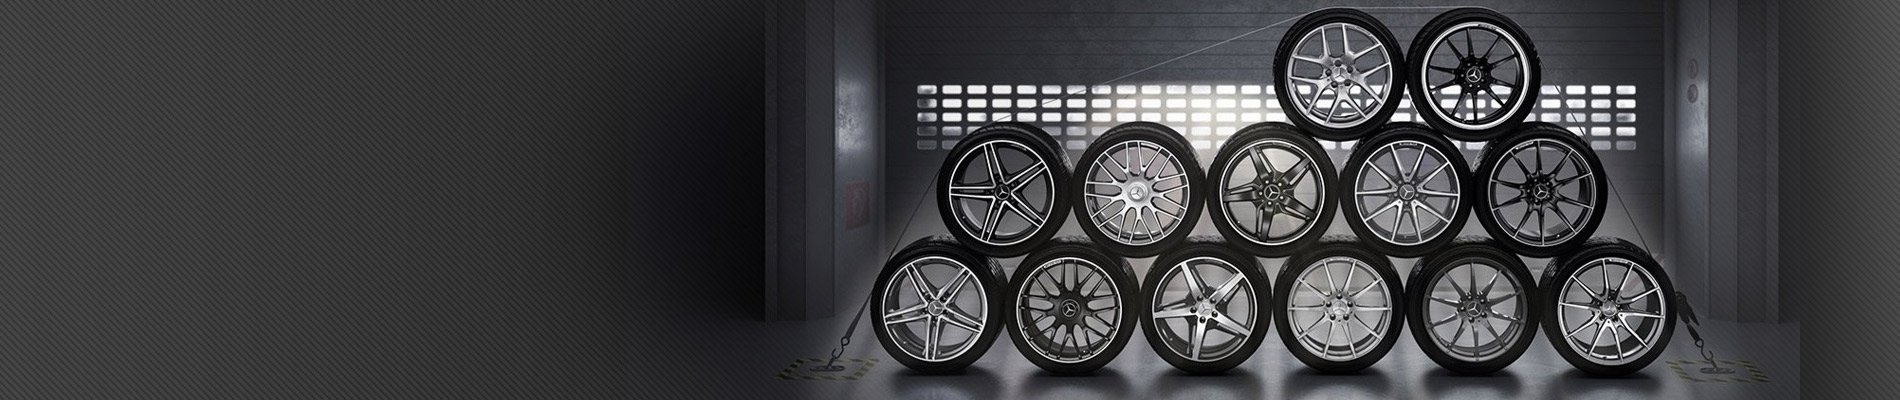 Mercedes benz genuineparts and genuineaccessories offers for Mercedes benz parts and accessories online